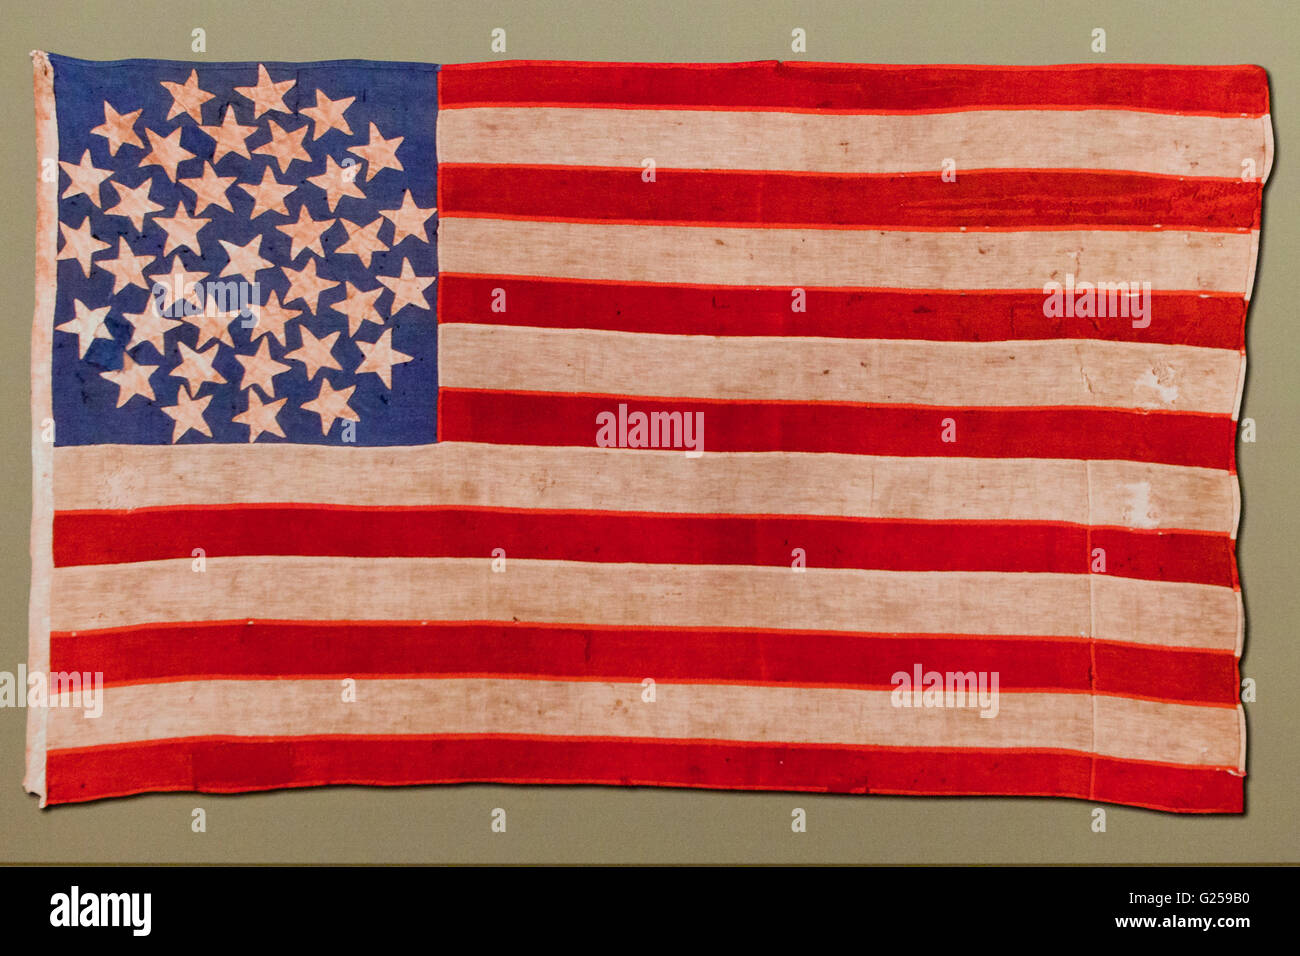 US flag with medallion formation, used in 1860s - Stock Image